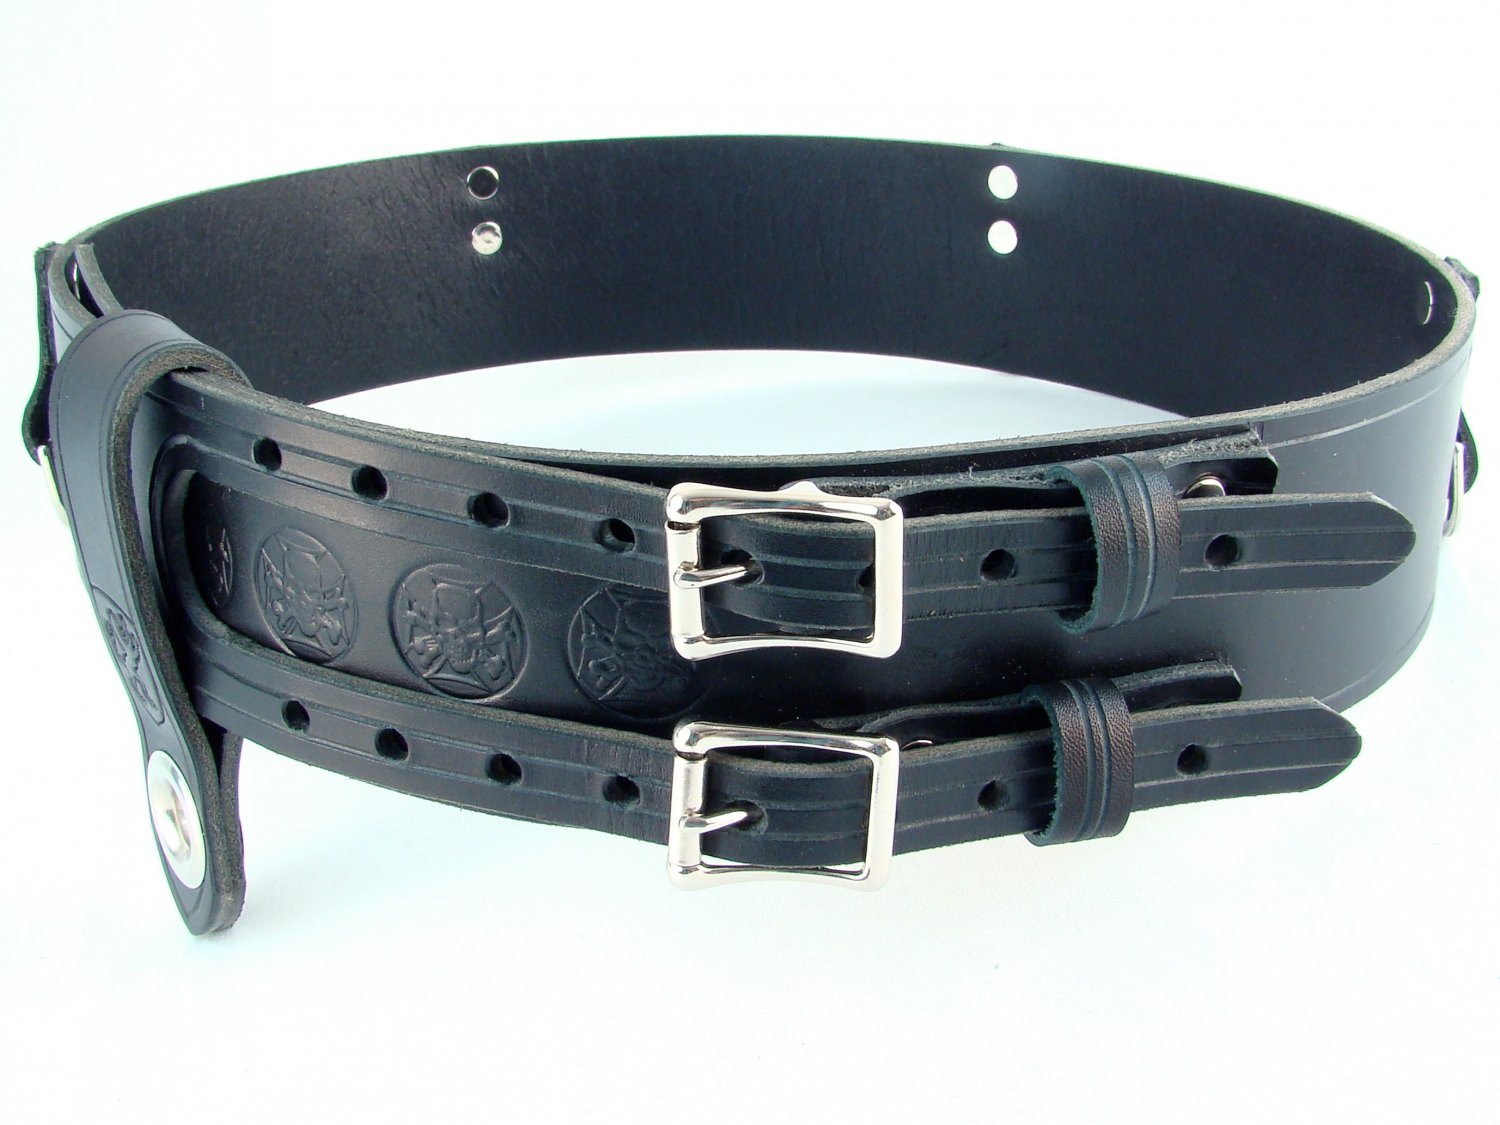 Size 32 Double Buckle Leather kilt Belt Thick Belt For Tartan and Utility kilts